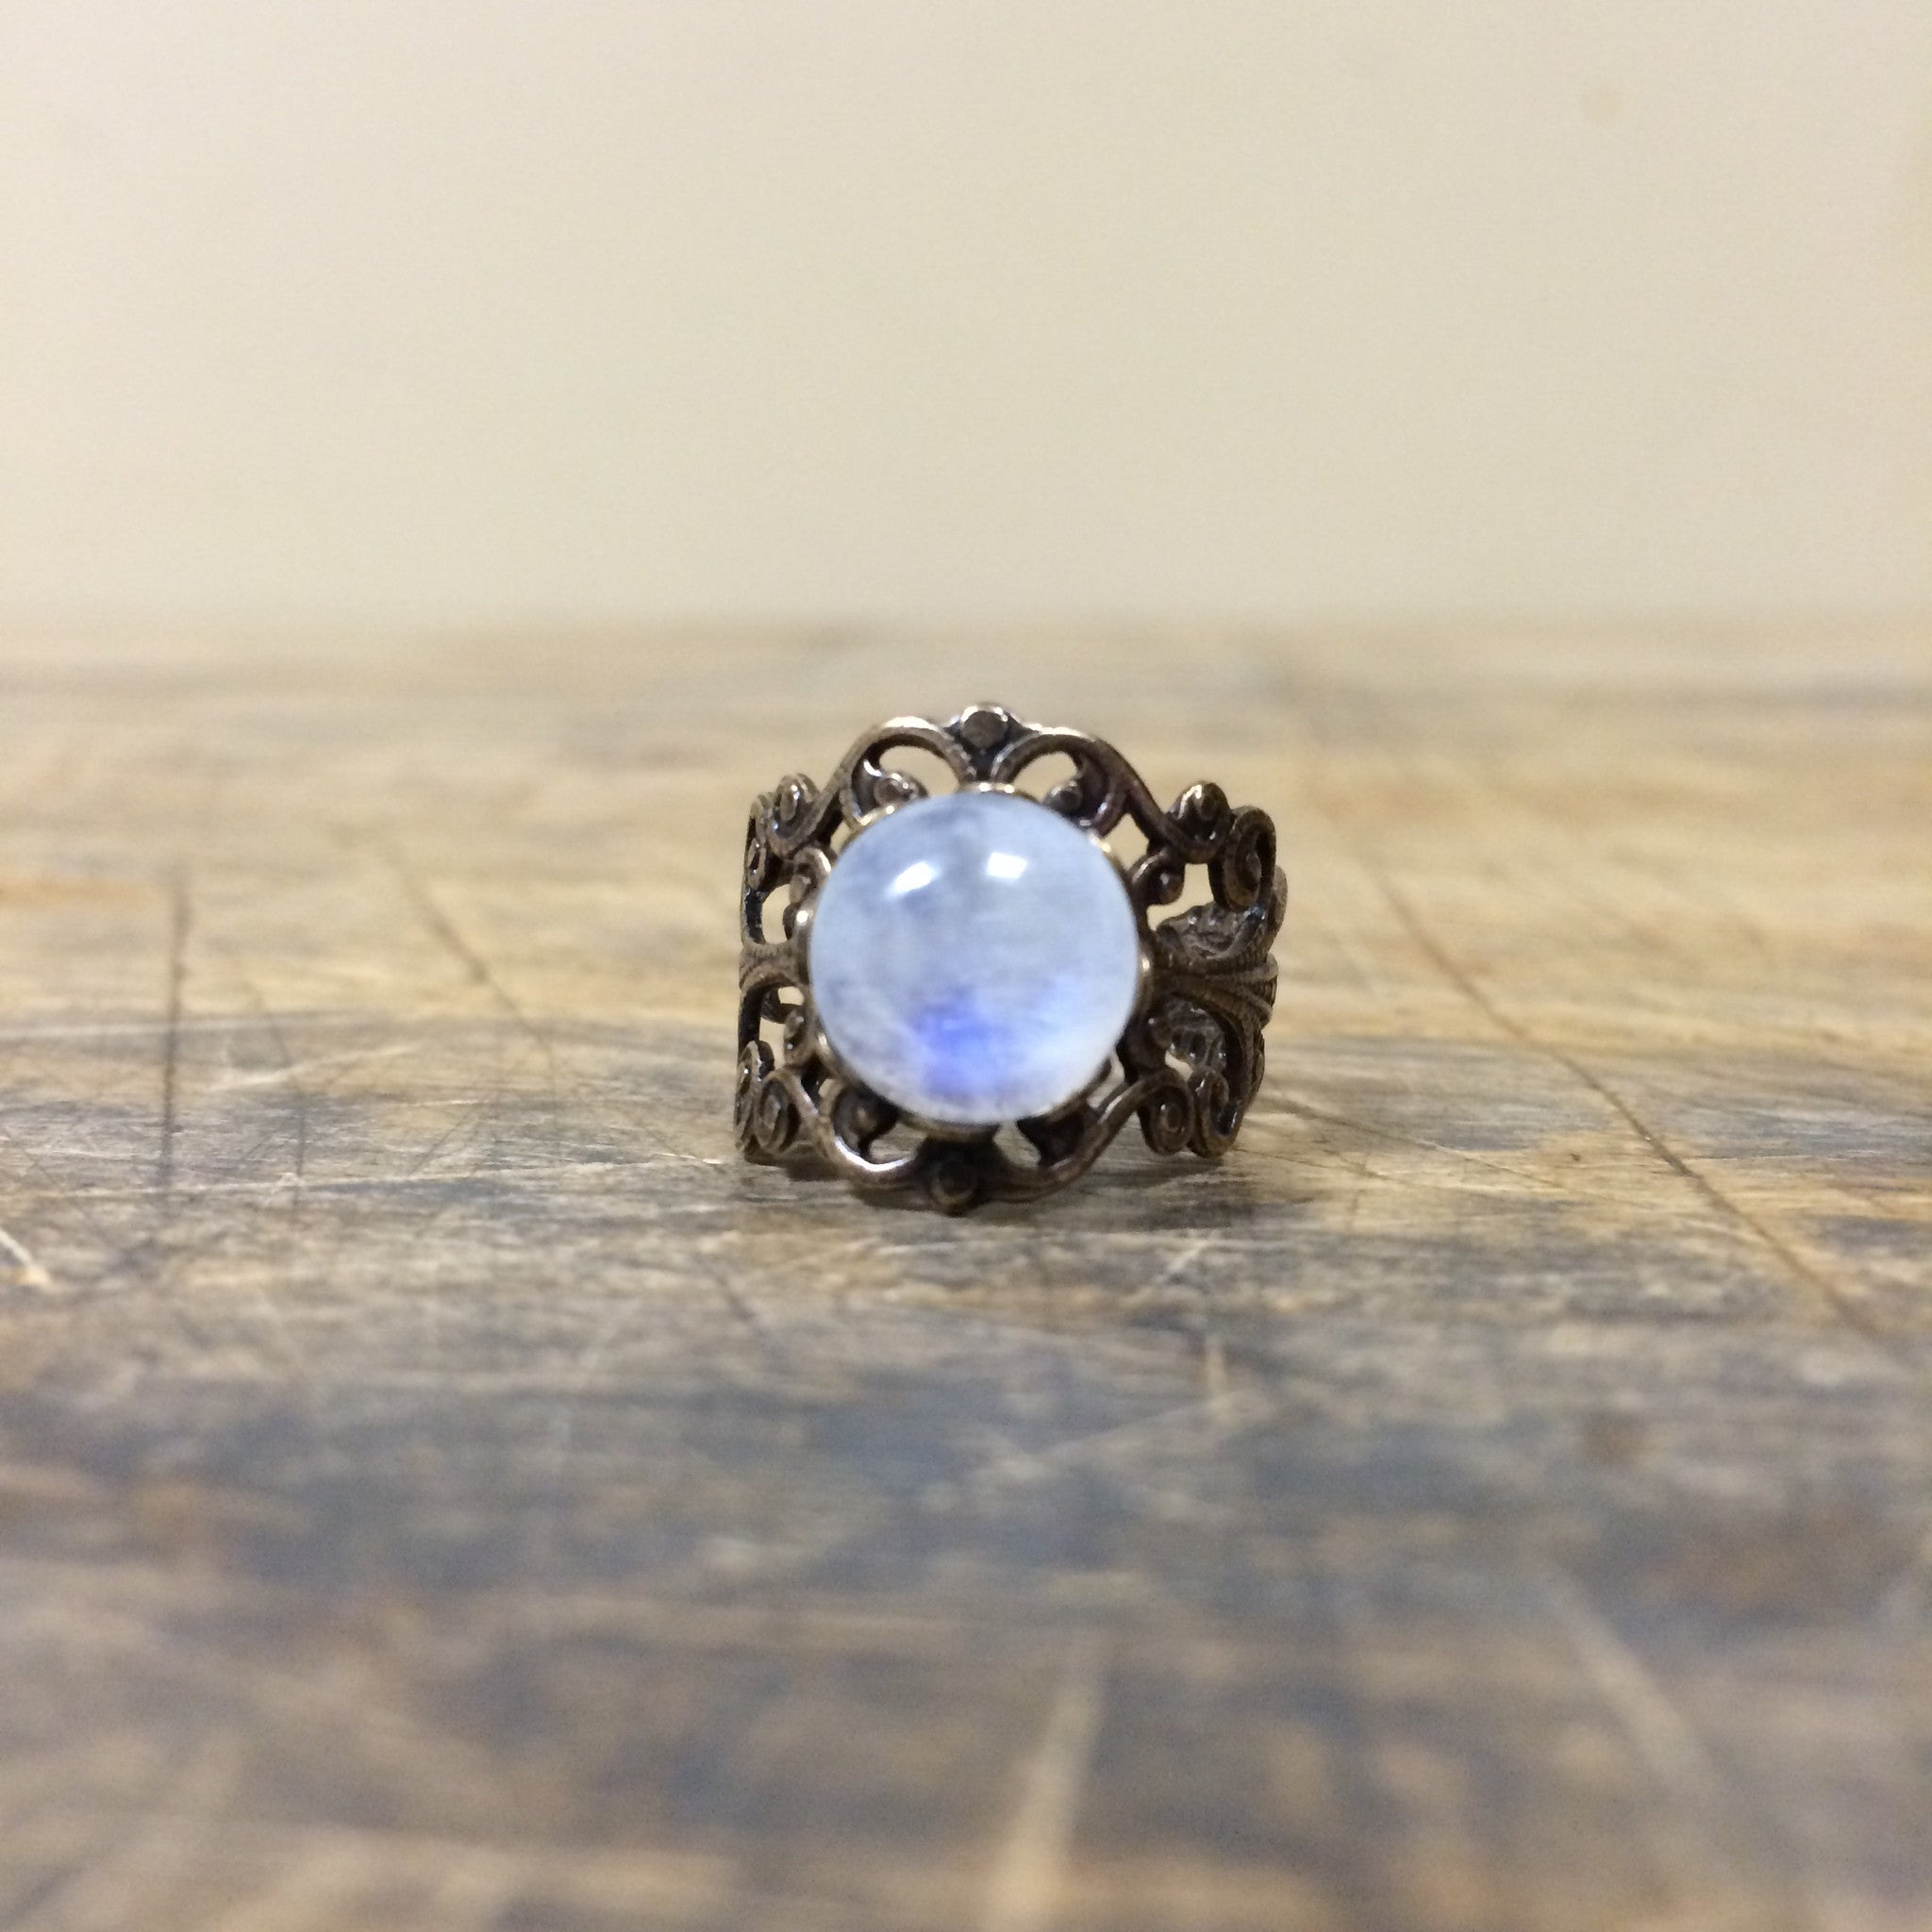 Handmade Moonstone Ring